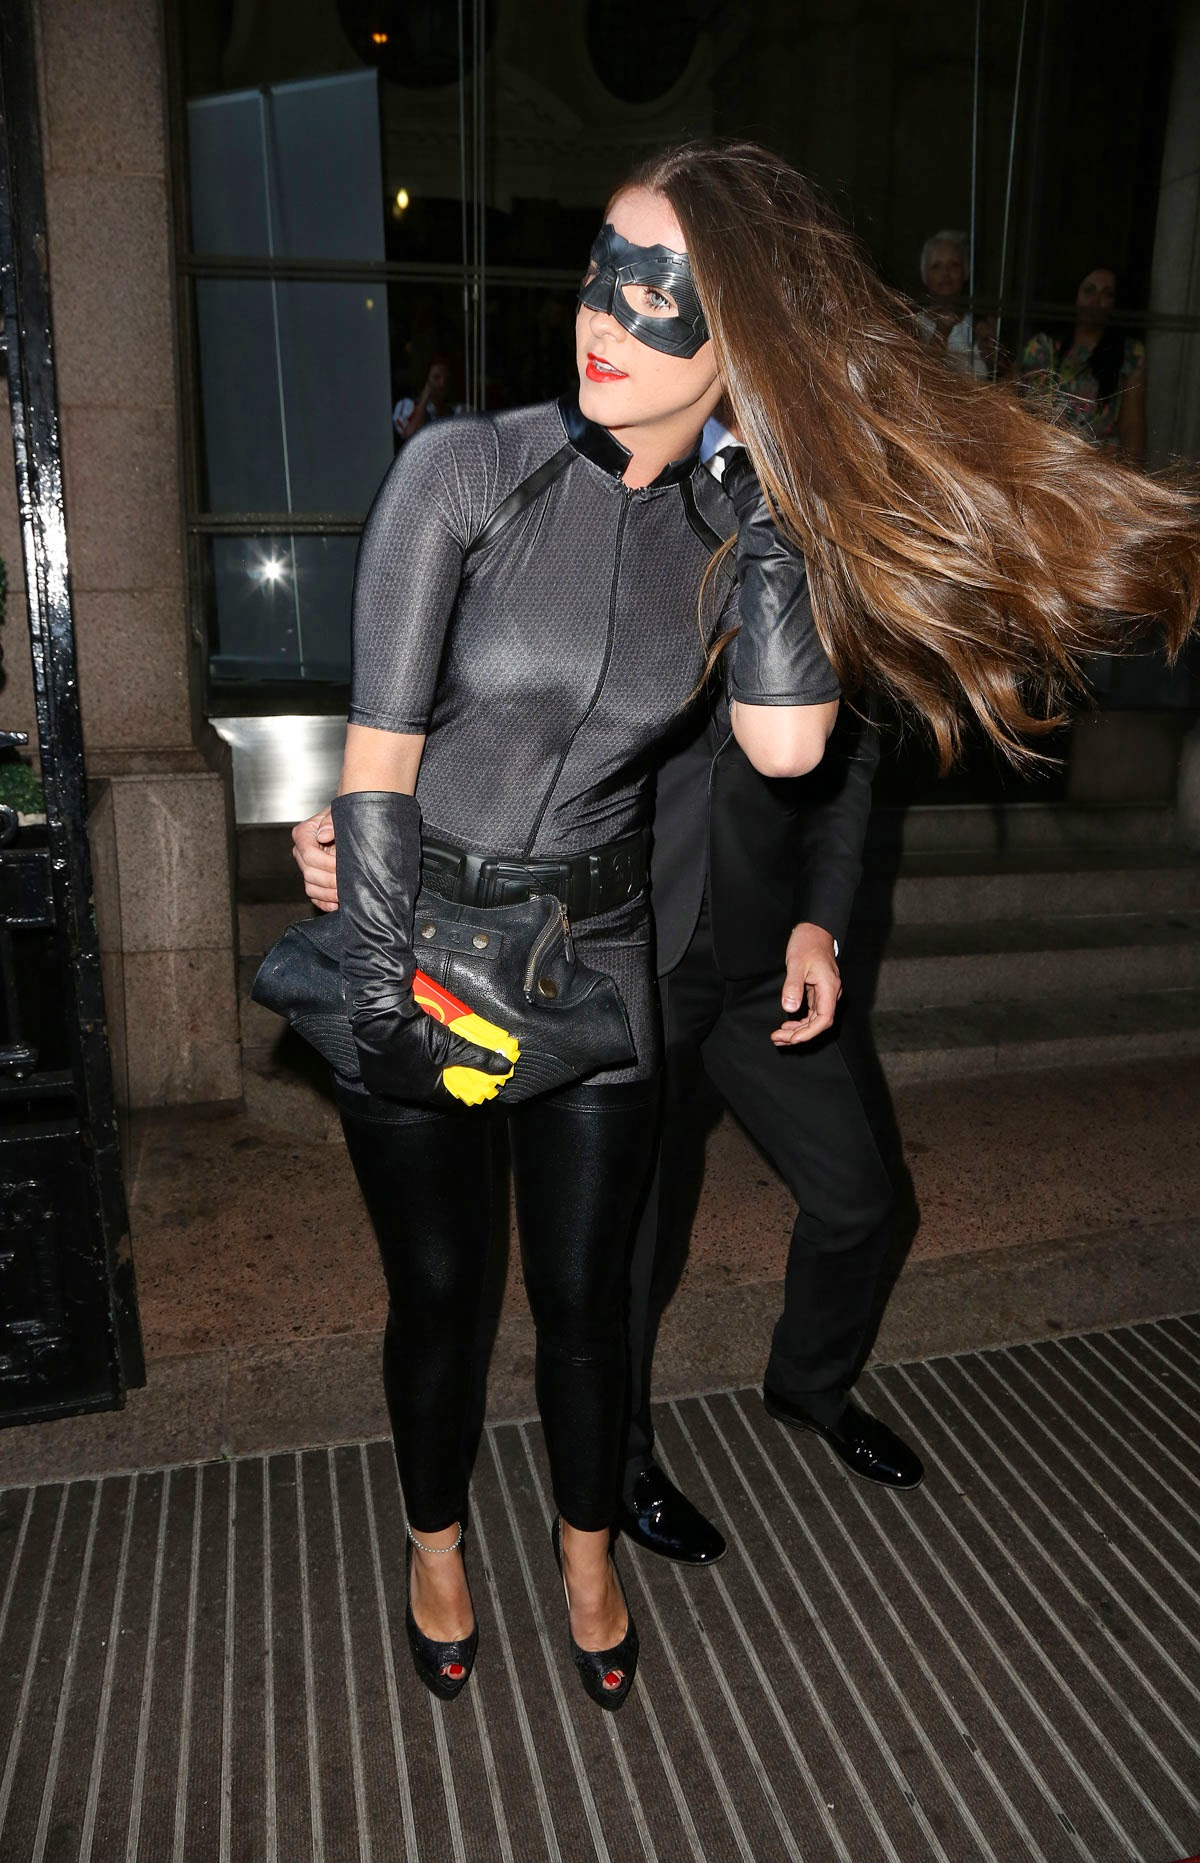 Anne hathaway as catwoman great ass - 2 part 1